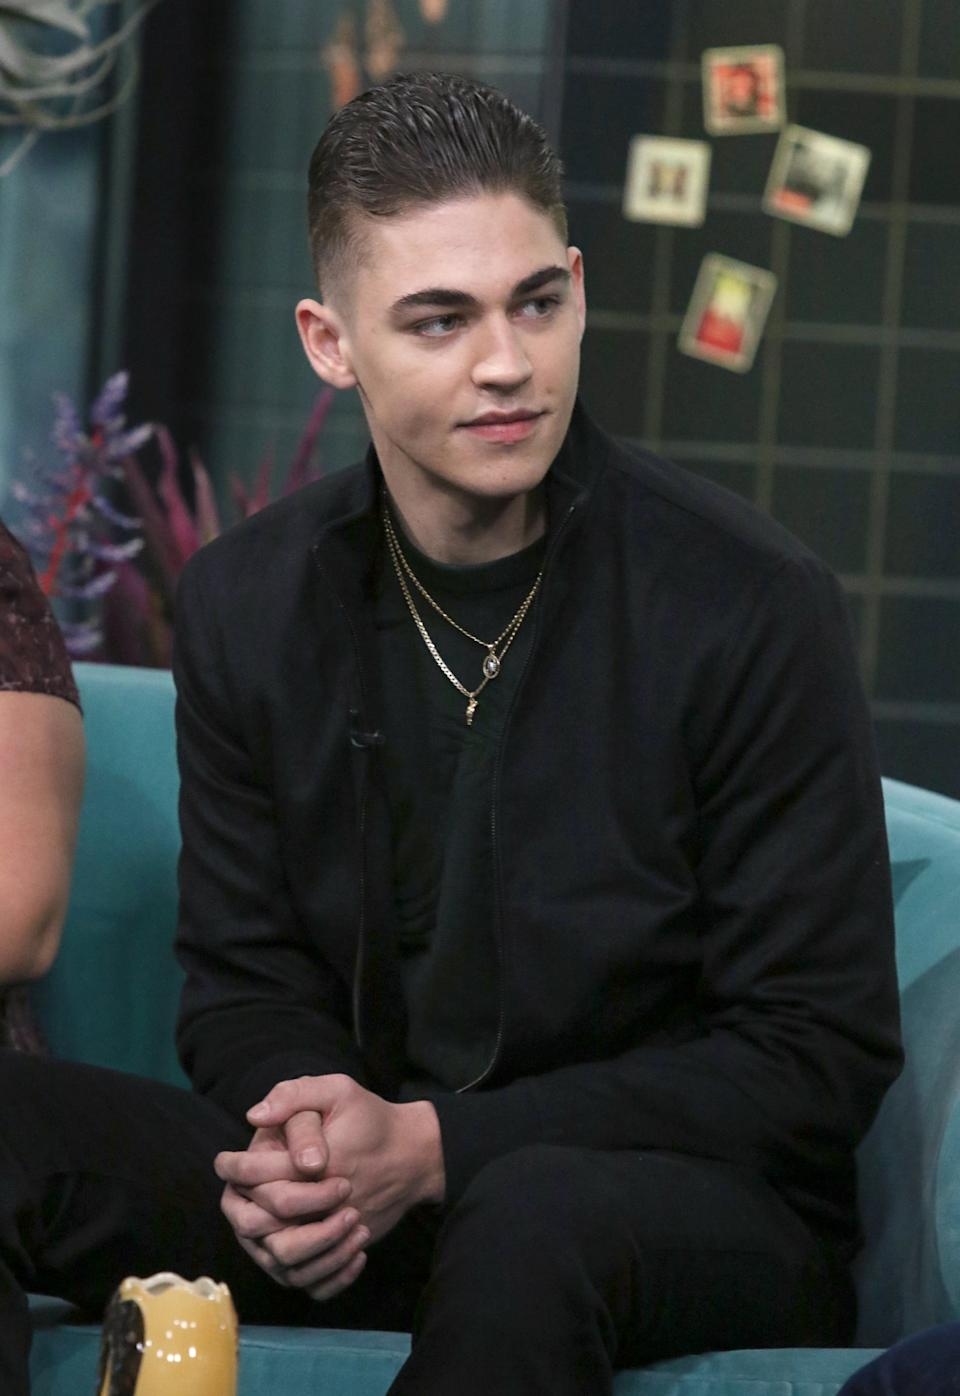 NEW YORK, NEW YORK - APRIL 11: Actor Hero Fiennes-Tiffin attends the Build Brunch at Build Studio on April 11, 2019 in New York City. (Photo by Jim Spellman/Getty Images)